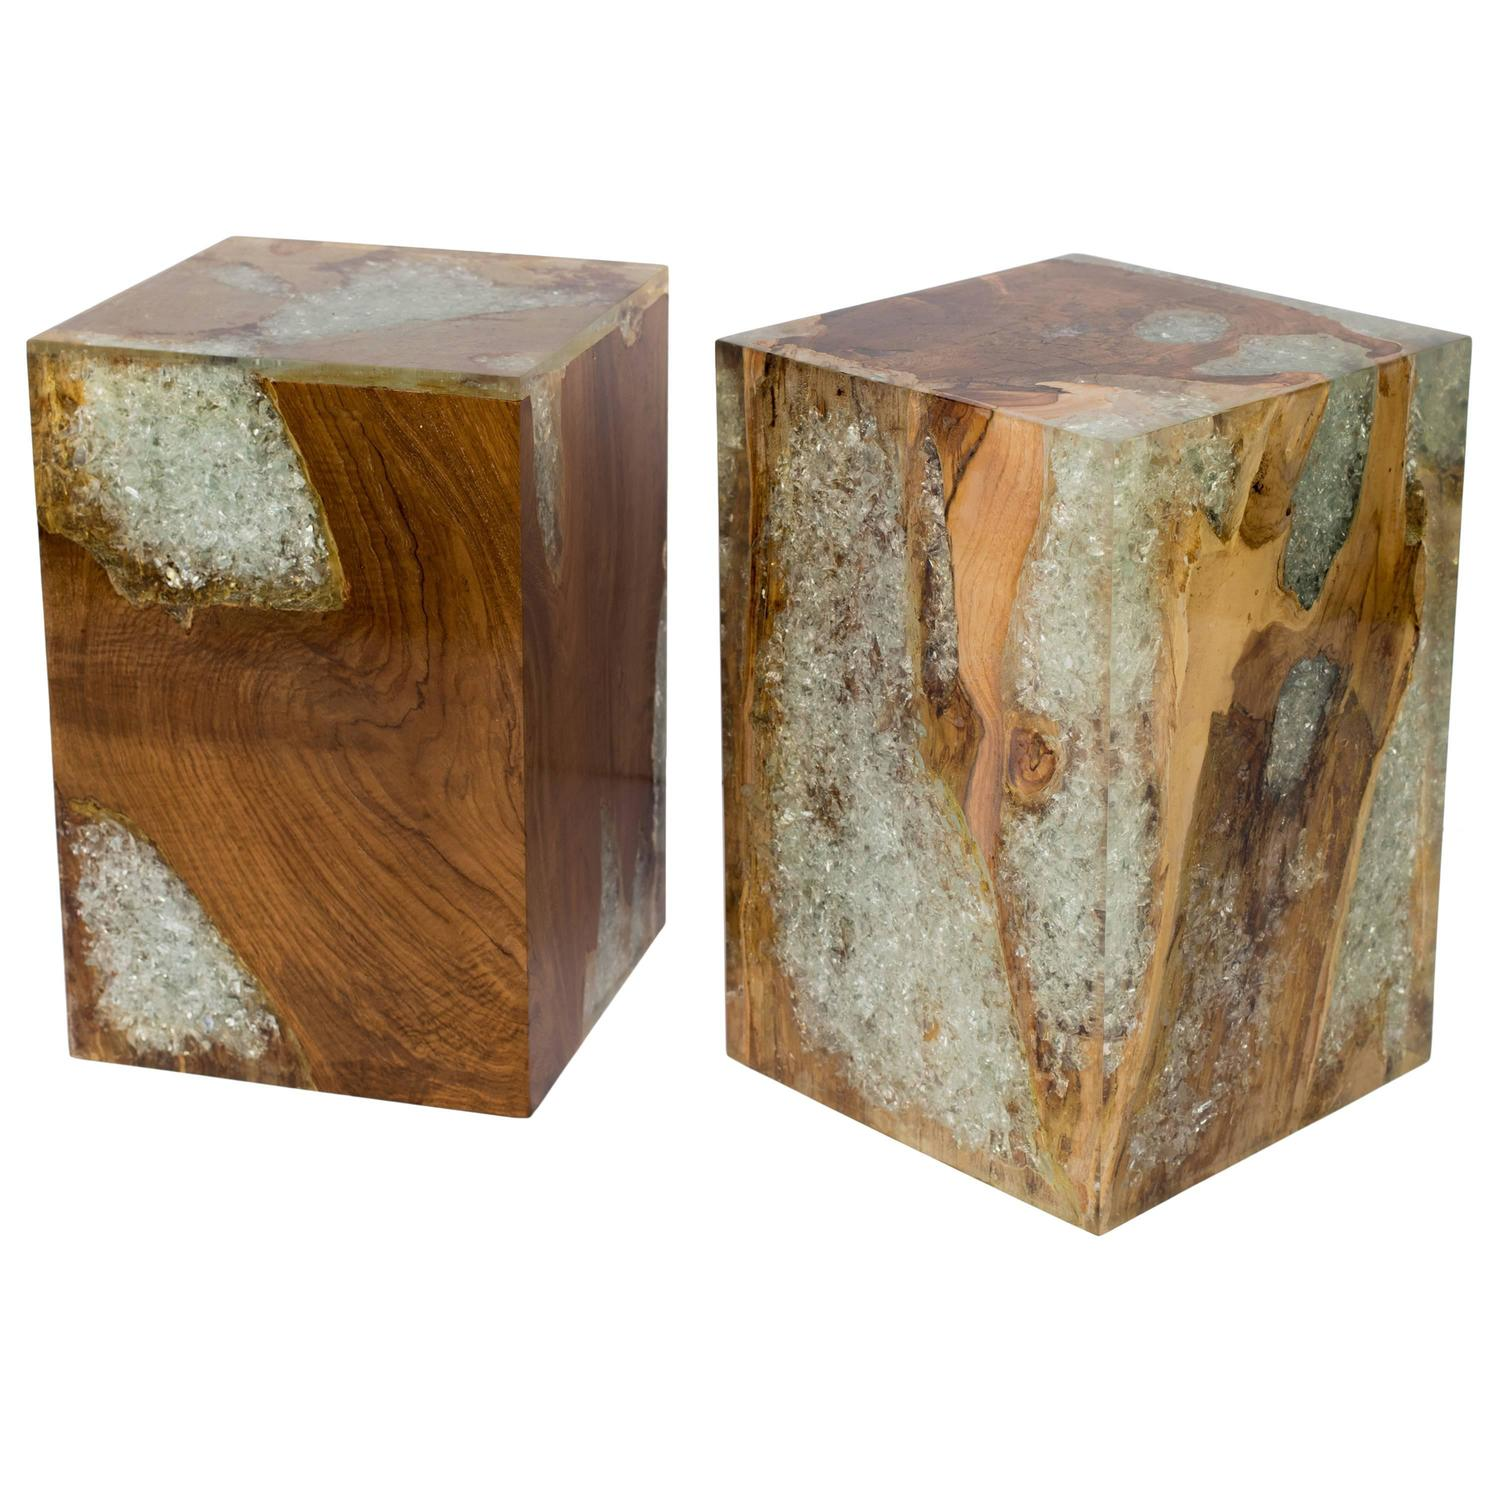 Organic Teak Wood And Ed Resin Cube Tables At 1stdibs